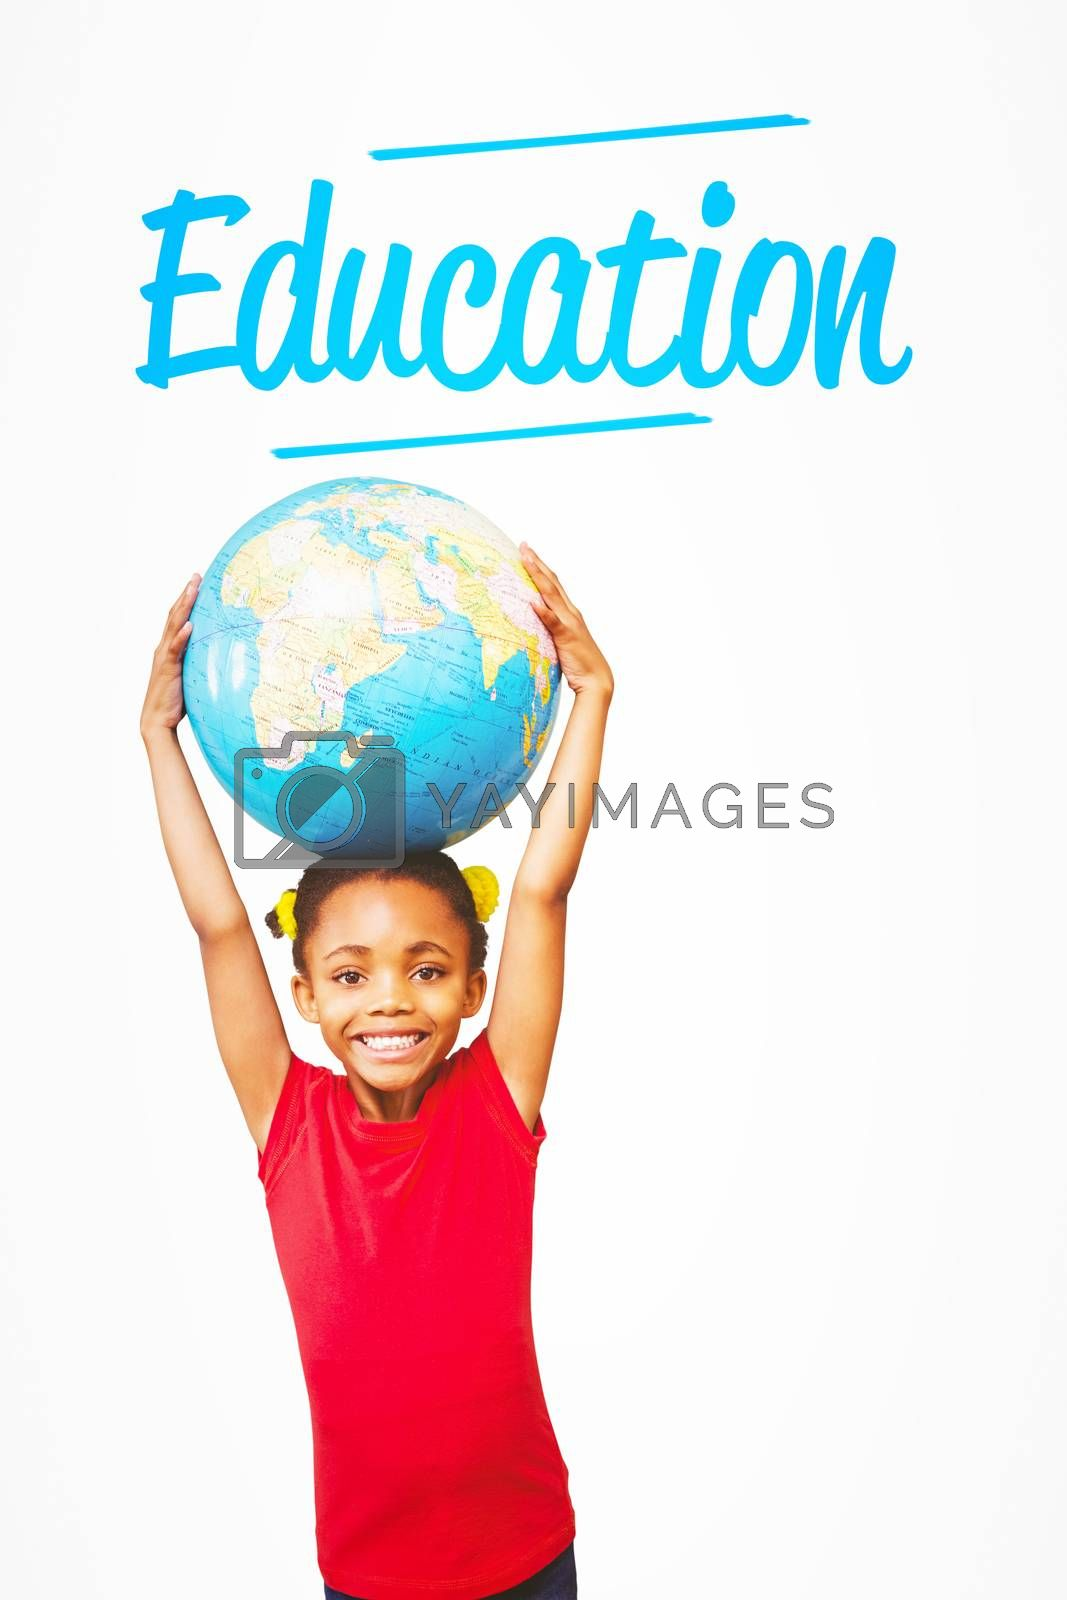 The word education and pupil holding globe against white background with vignette